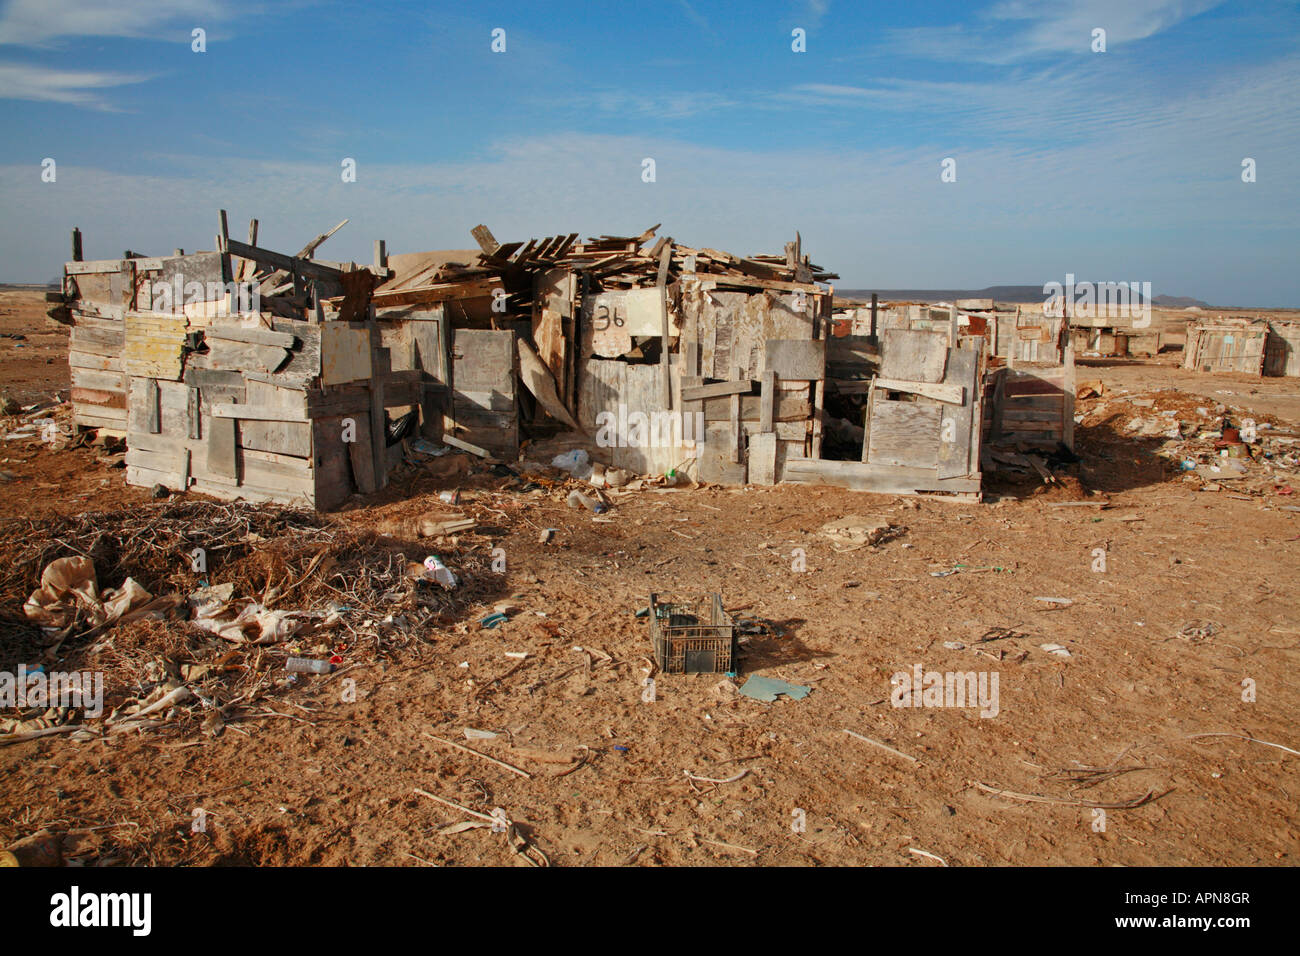 Shanty housing behind the tourist resort of Santa Maria on the Cape Verde island of Sal - Stock Image